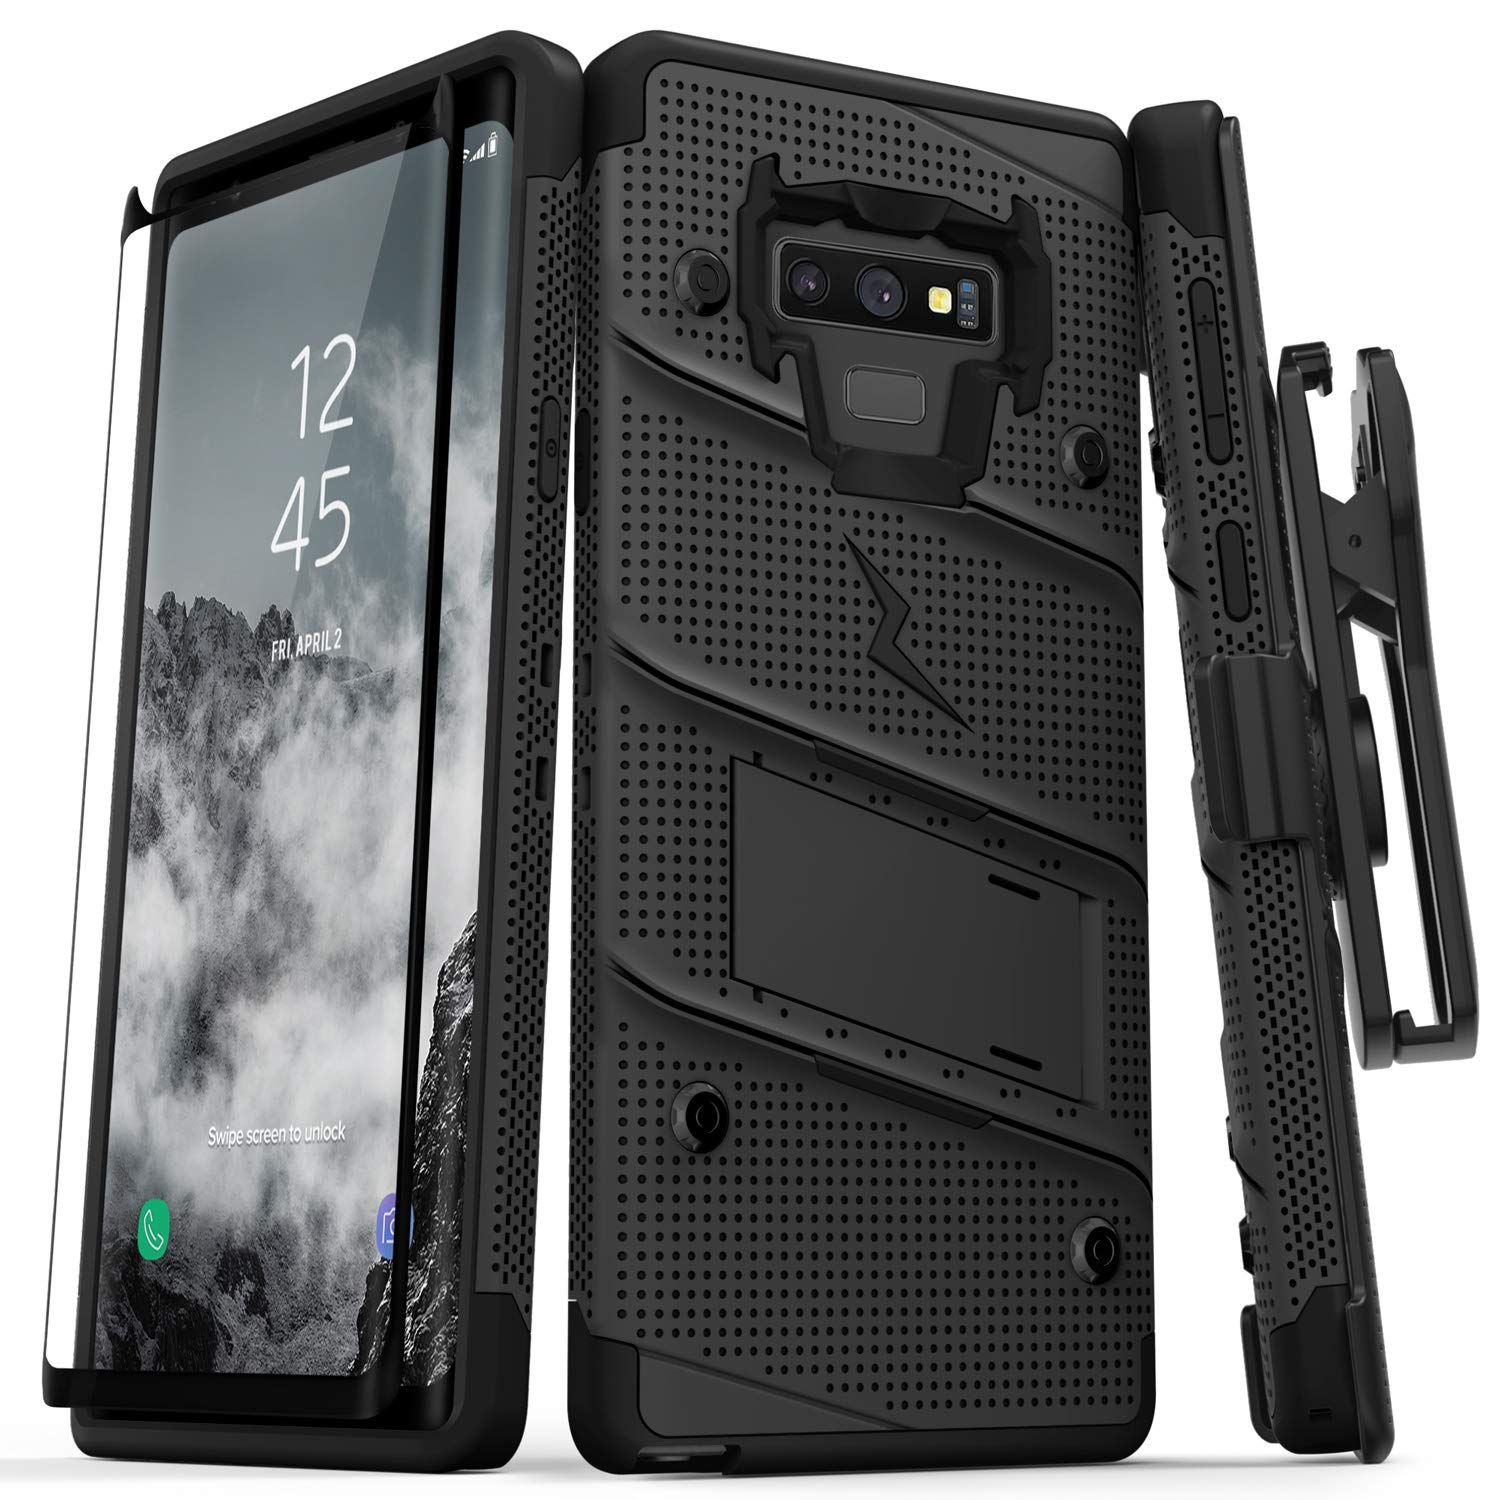 Zizo Bolt Series Galaxy Note 9 Case Grade Drop Tested and Tempered Glass Screen Protector for Samsung Galaxy Note 9 - Black 1BOLT-SAMGN9-BKBK by Zizo